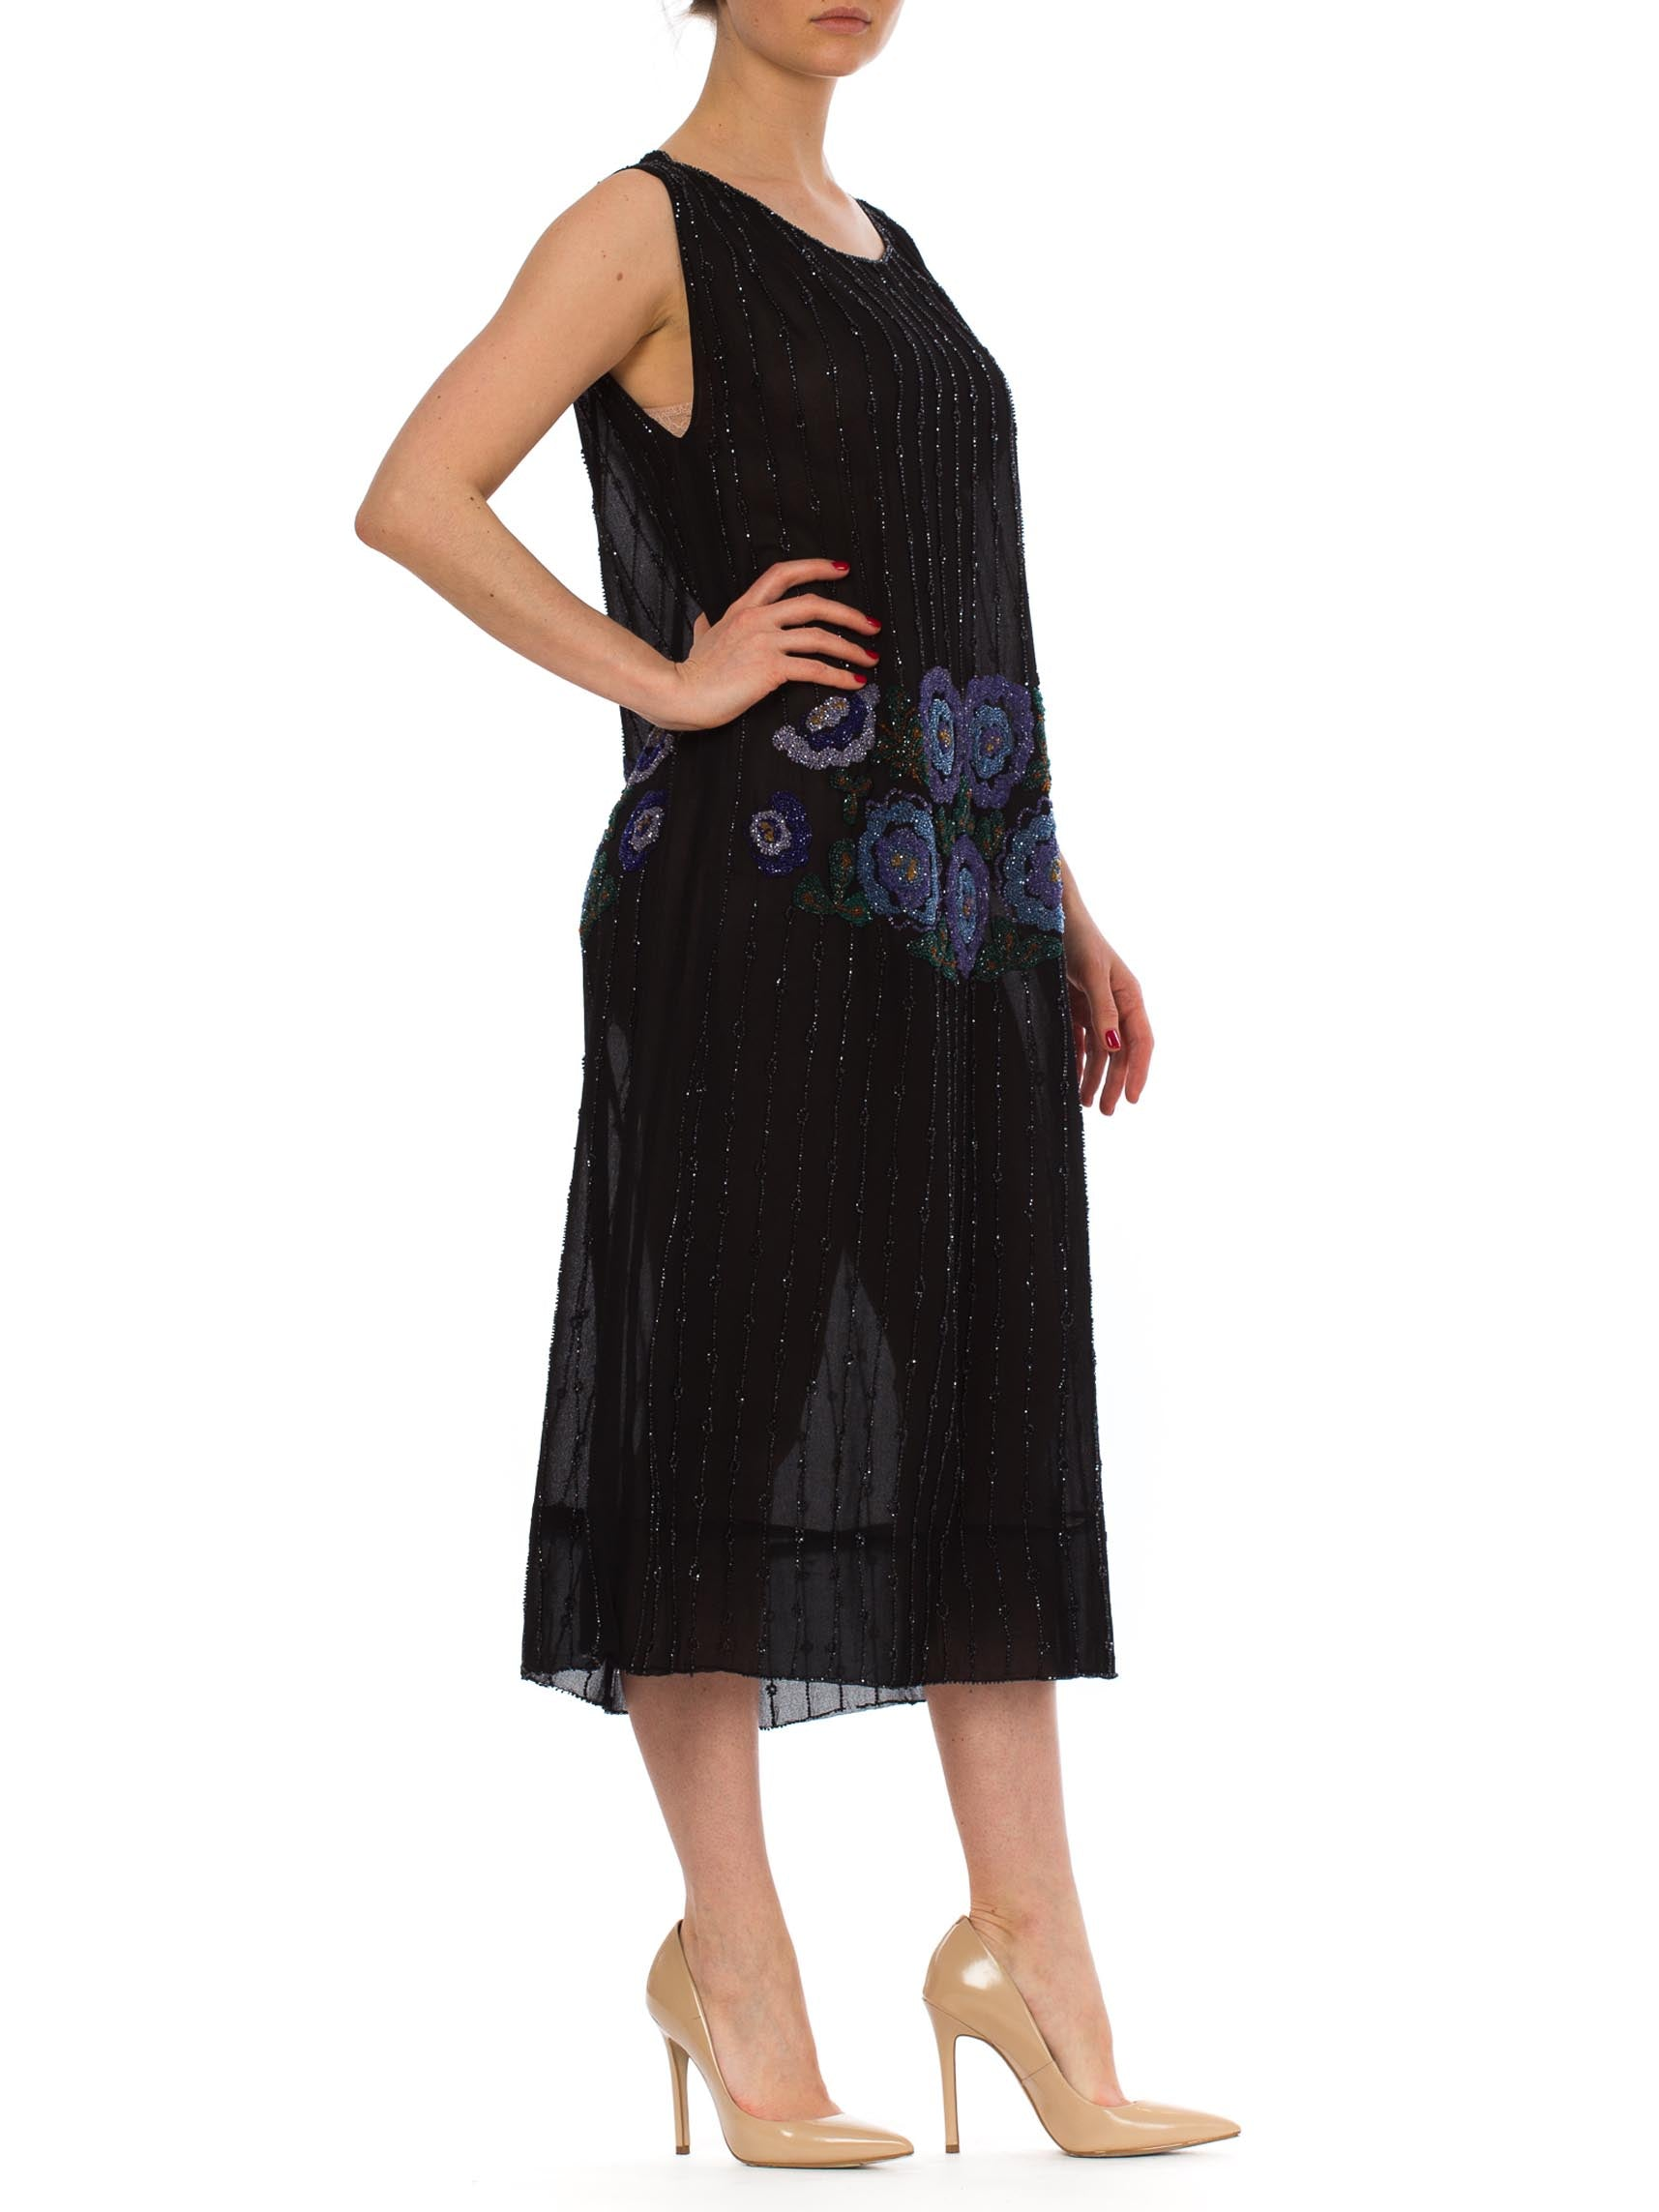 1920S Black Silk Chiffon Flapper Dress With Blue & Green Floral Beadwork